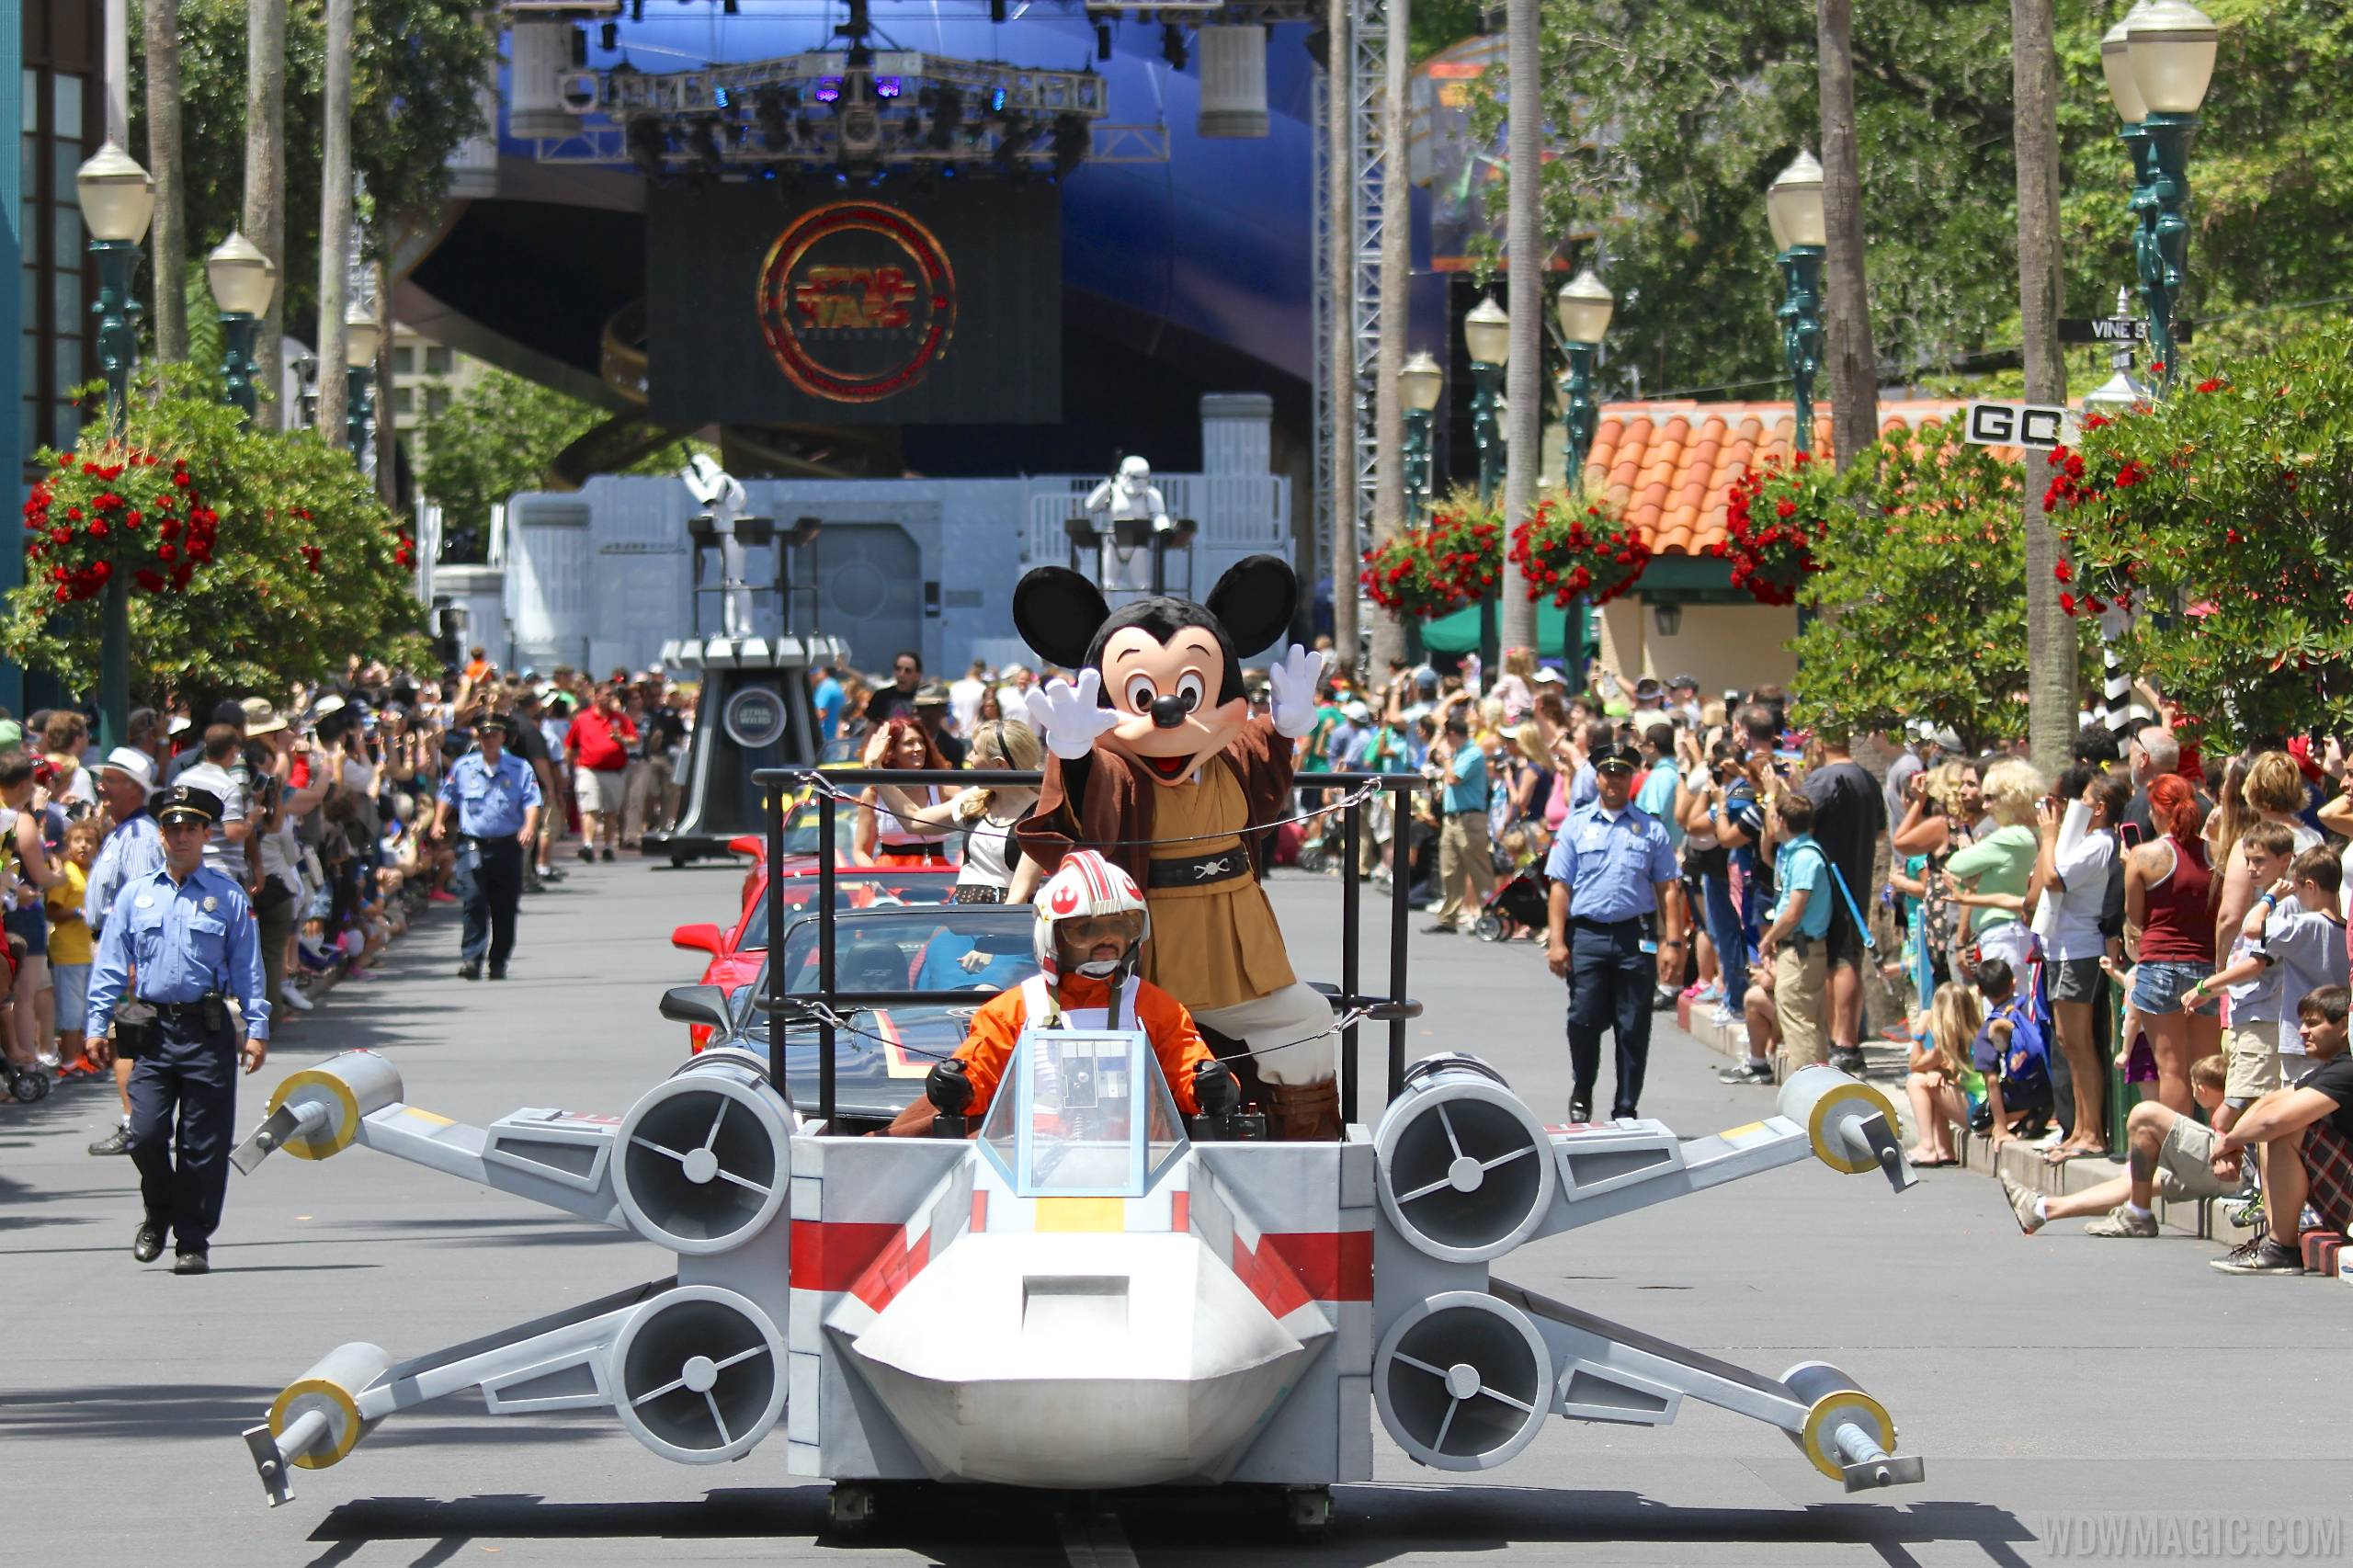 2014 Star Wars Weekends - Weekend 1 Legends of the Force motorcade - Mickey Mouse